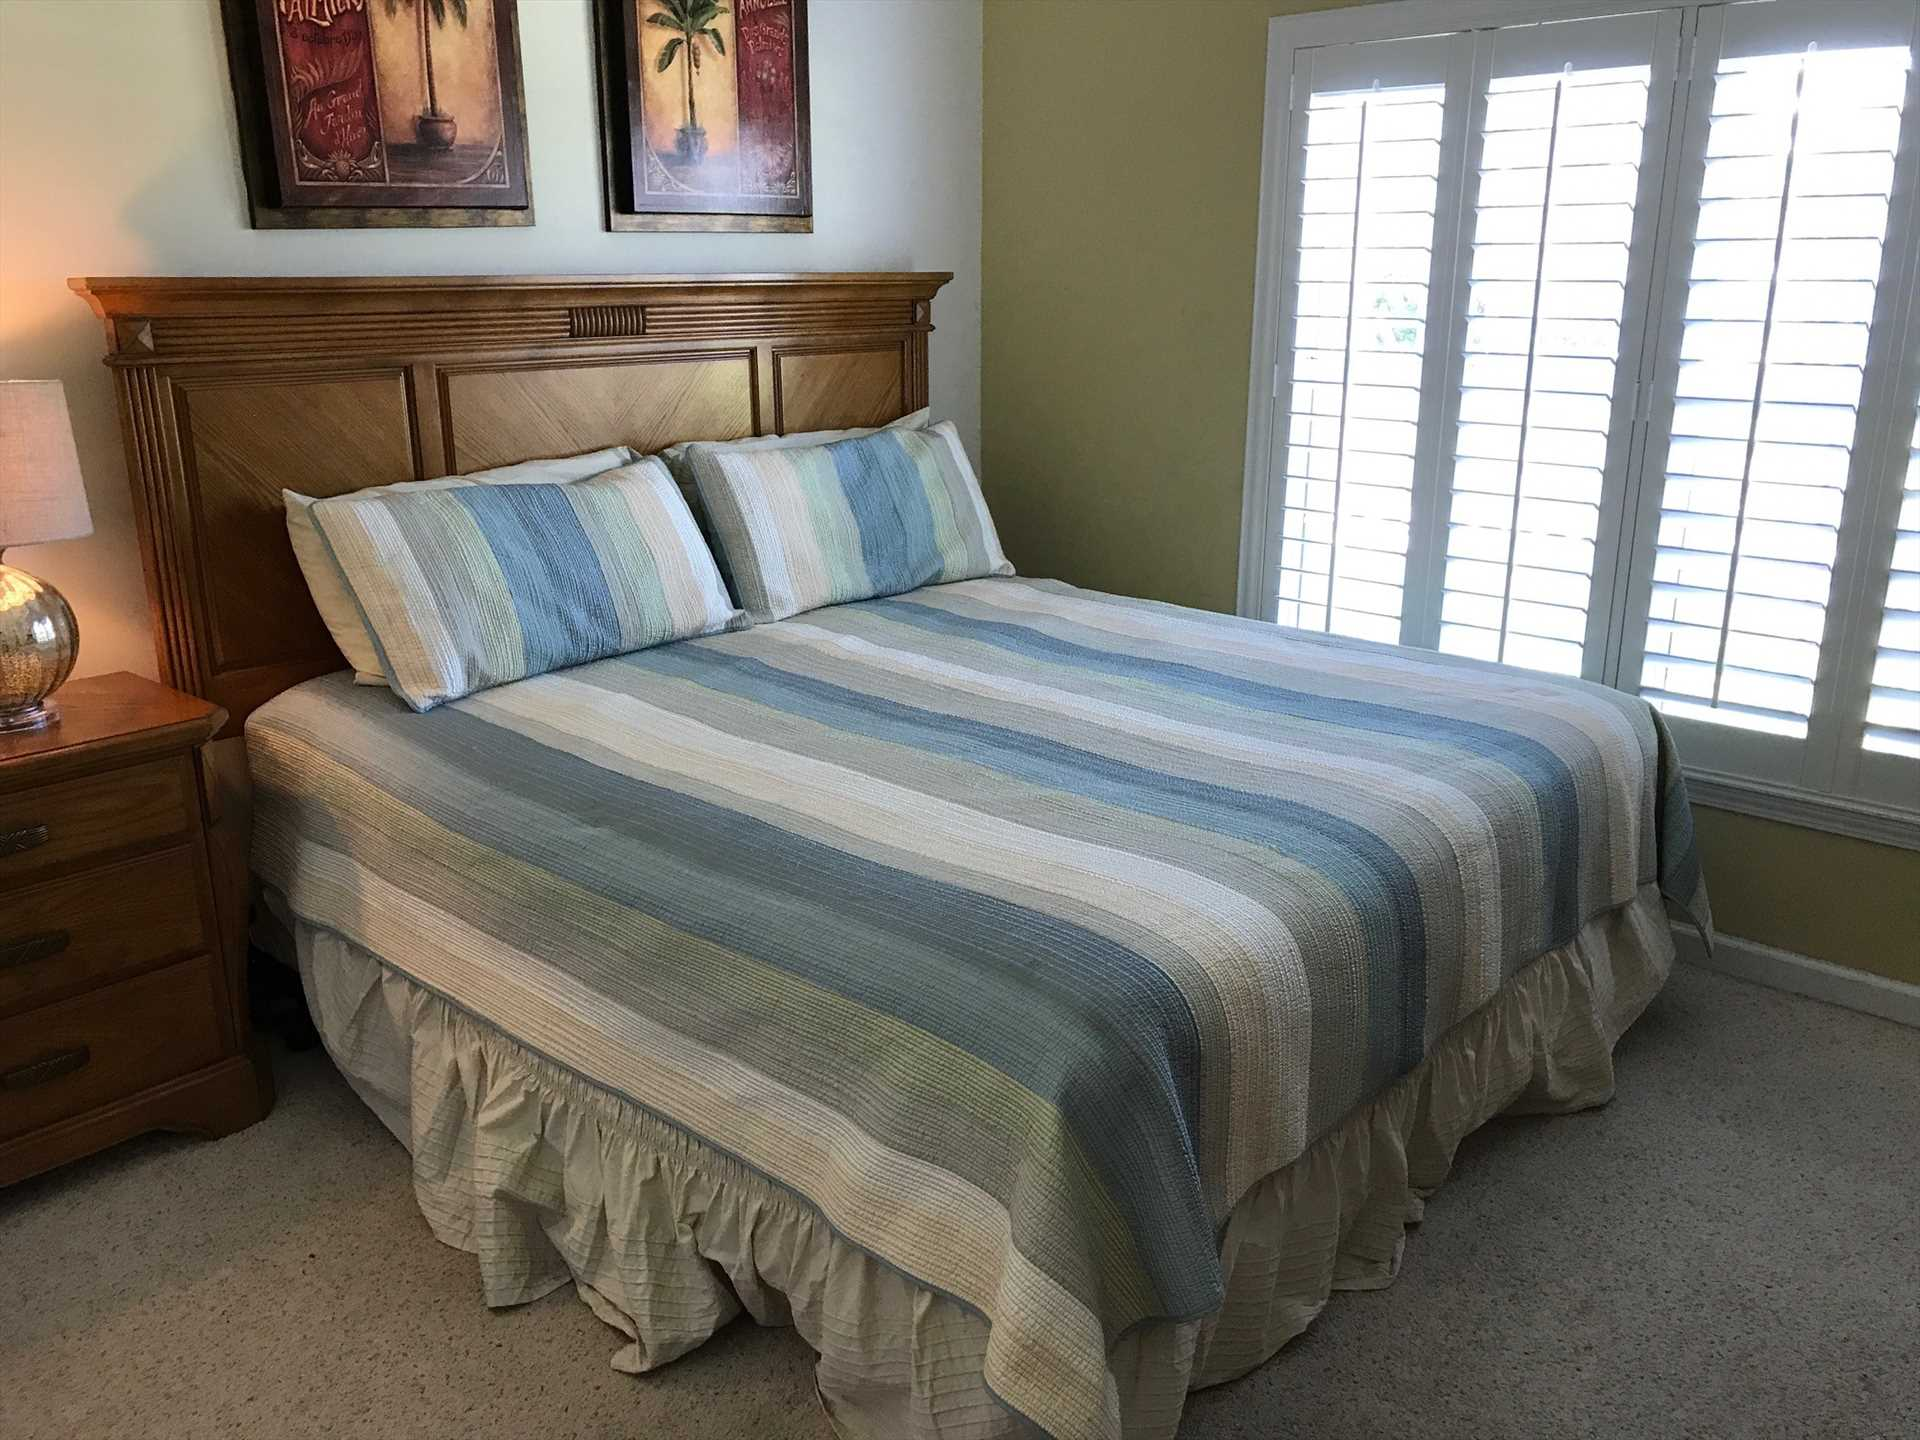 GUEST ROOM W/MASTER BED